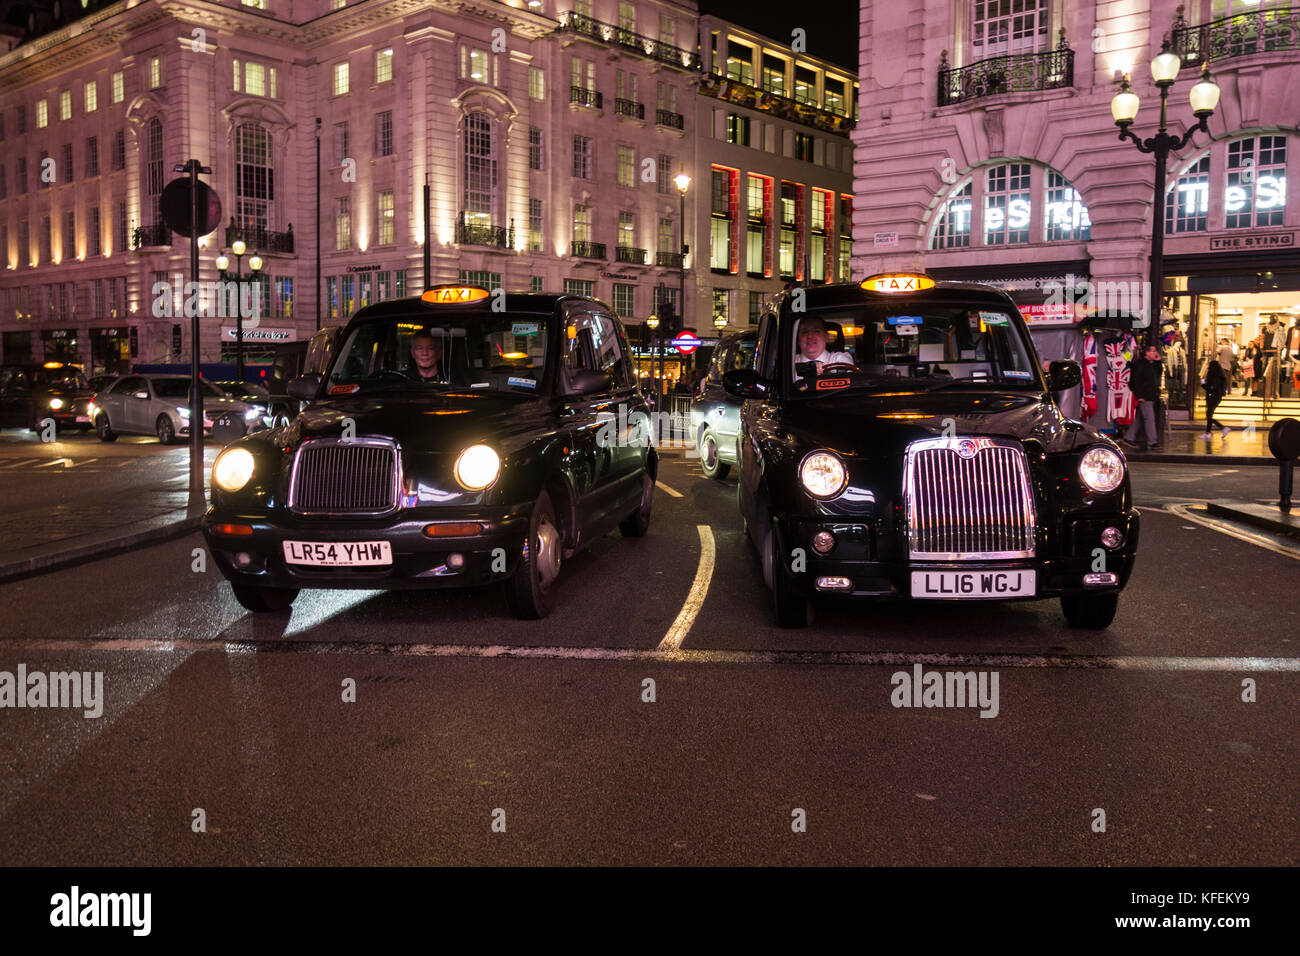 Black London taxicabs waiting for the lights to change on Piccadilly Circus, London, UK Stock Photo